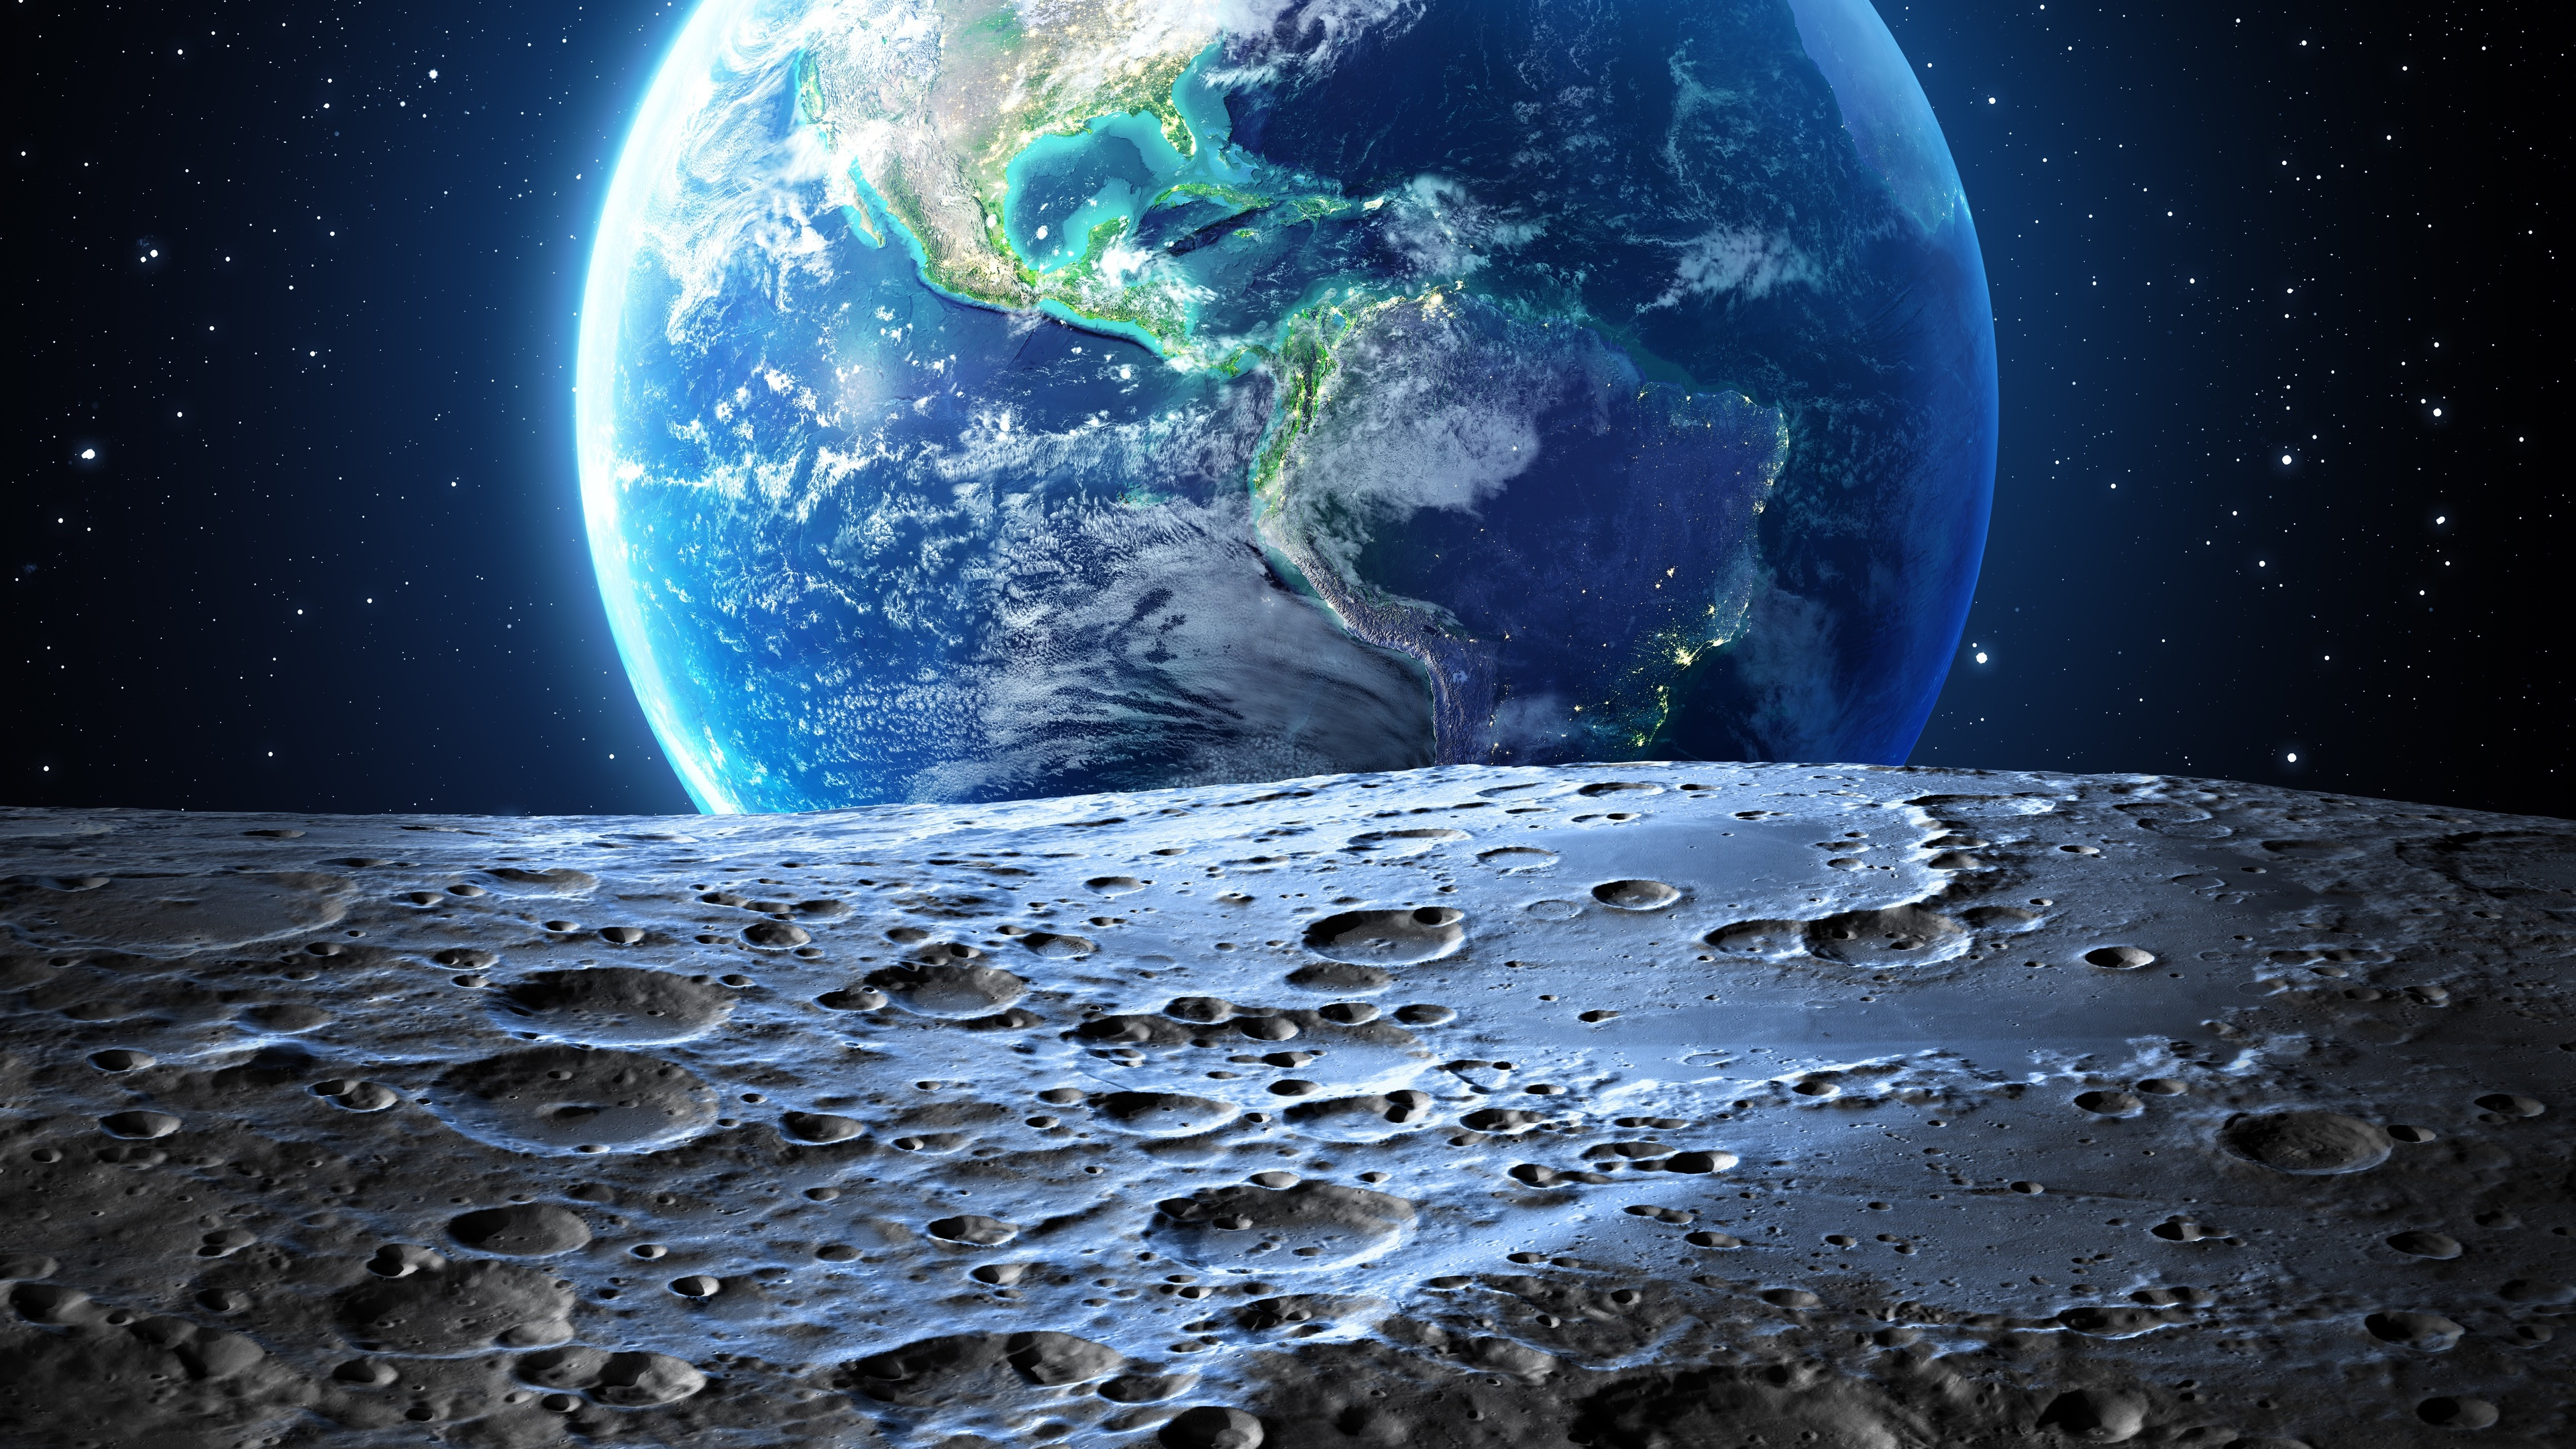 earth moon 4k 1546279097 - Earth Moon 4k - nature wallpapers, moon wallpapers, hd-wallpapers, earth wallpapers, digital universe wallpapers, 4k-wallpapers